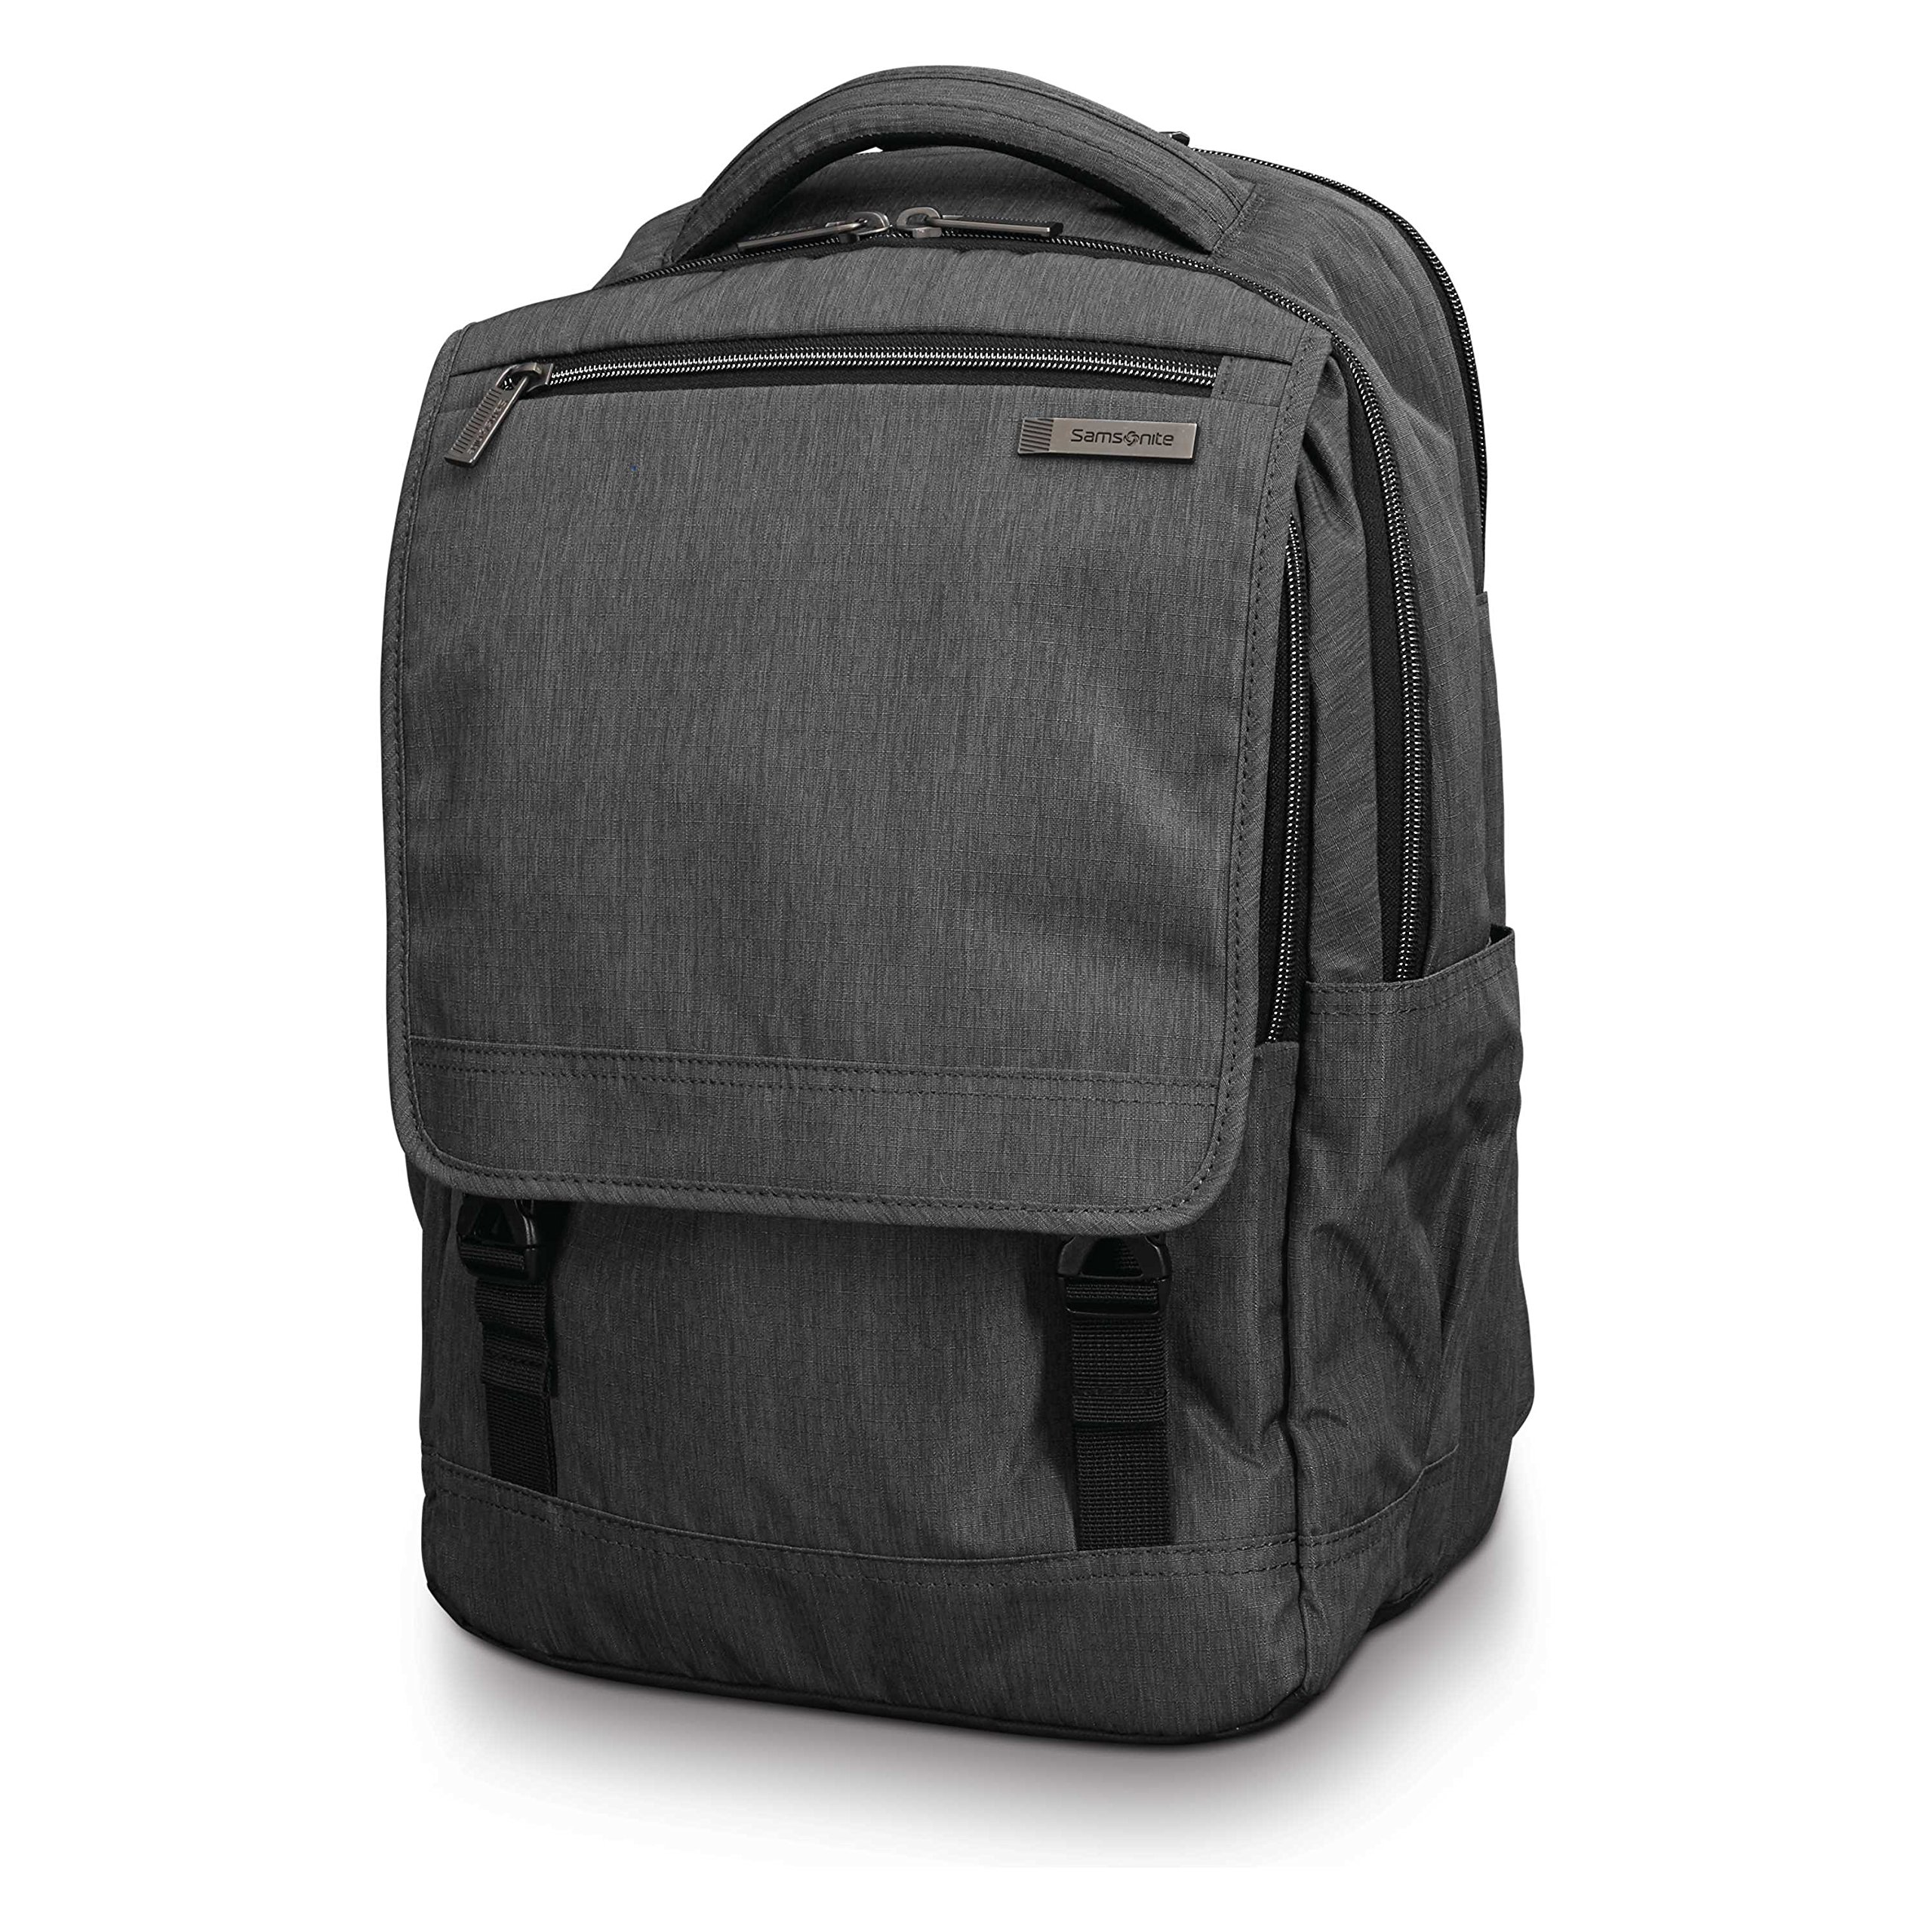 Samsonite Modern Utility Paracycle Backpack Laptop, Charcoal Heather, One Size by Samsonite (Image #1)